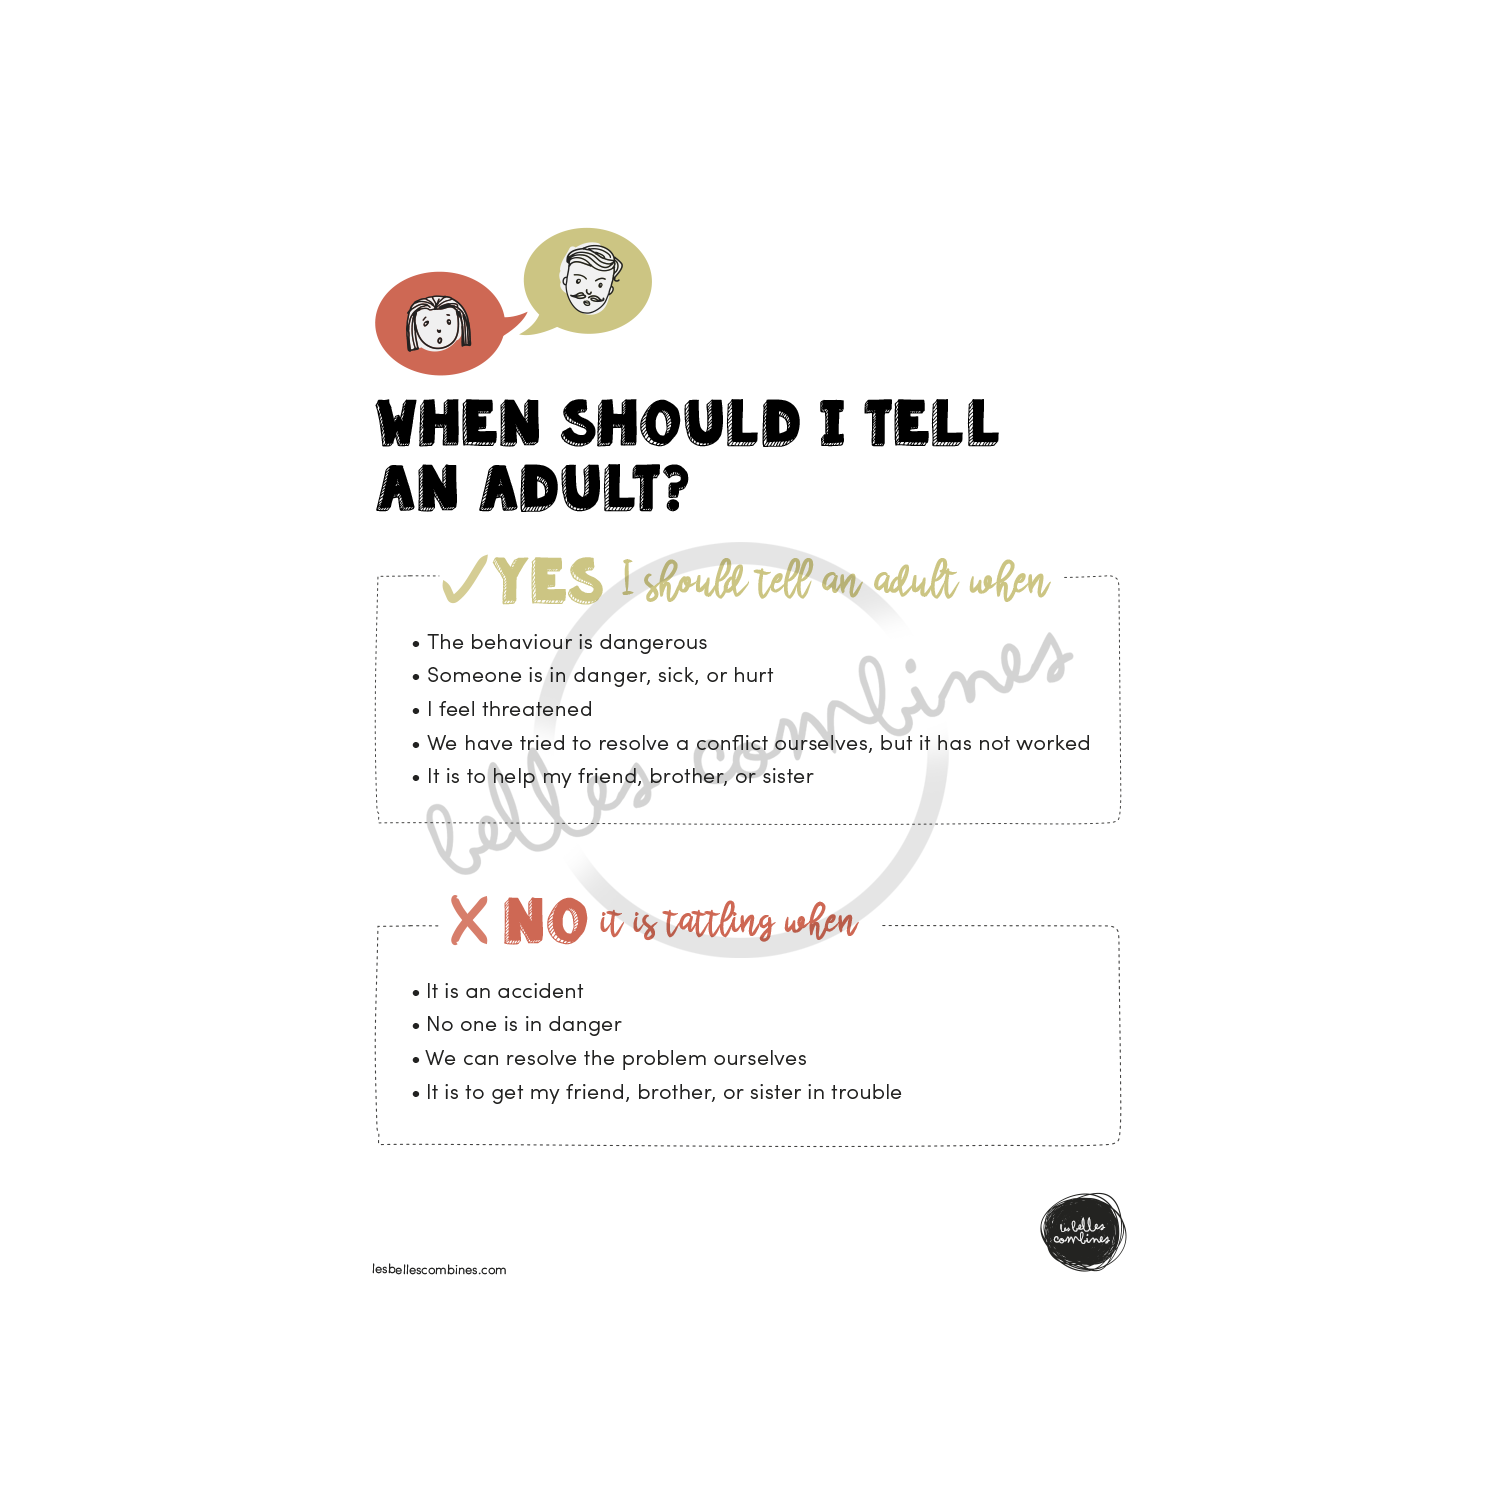 When should I tell an adult?